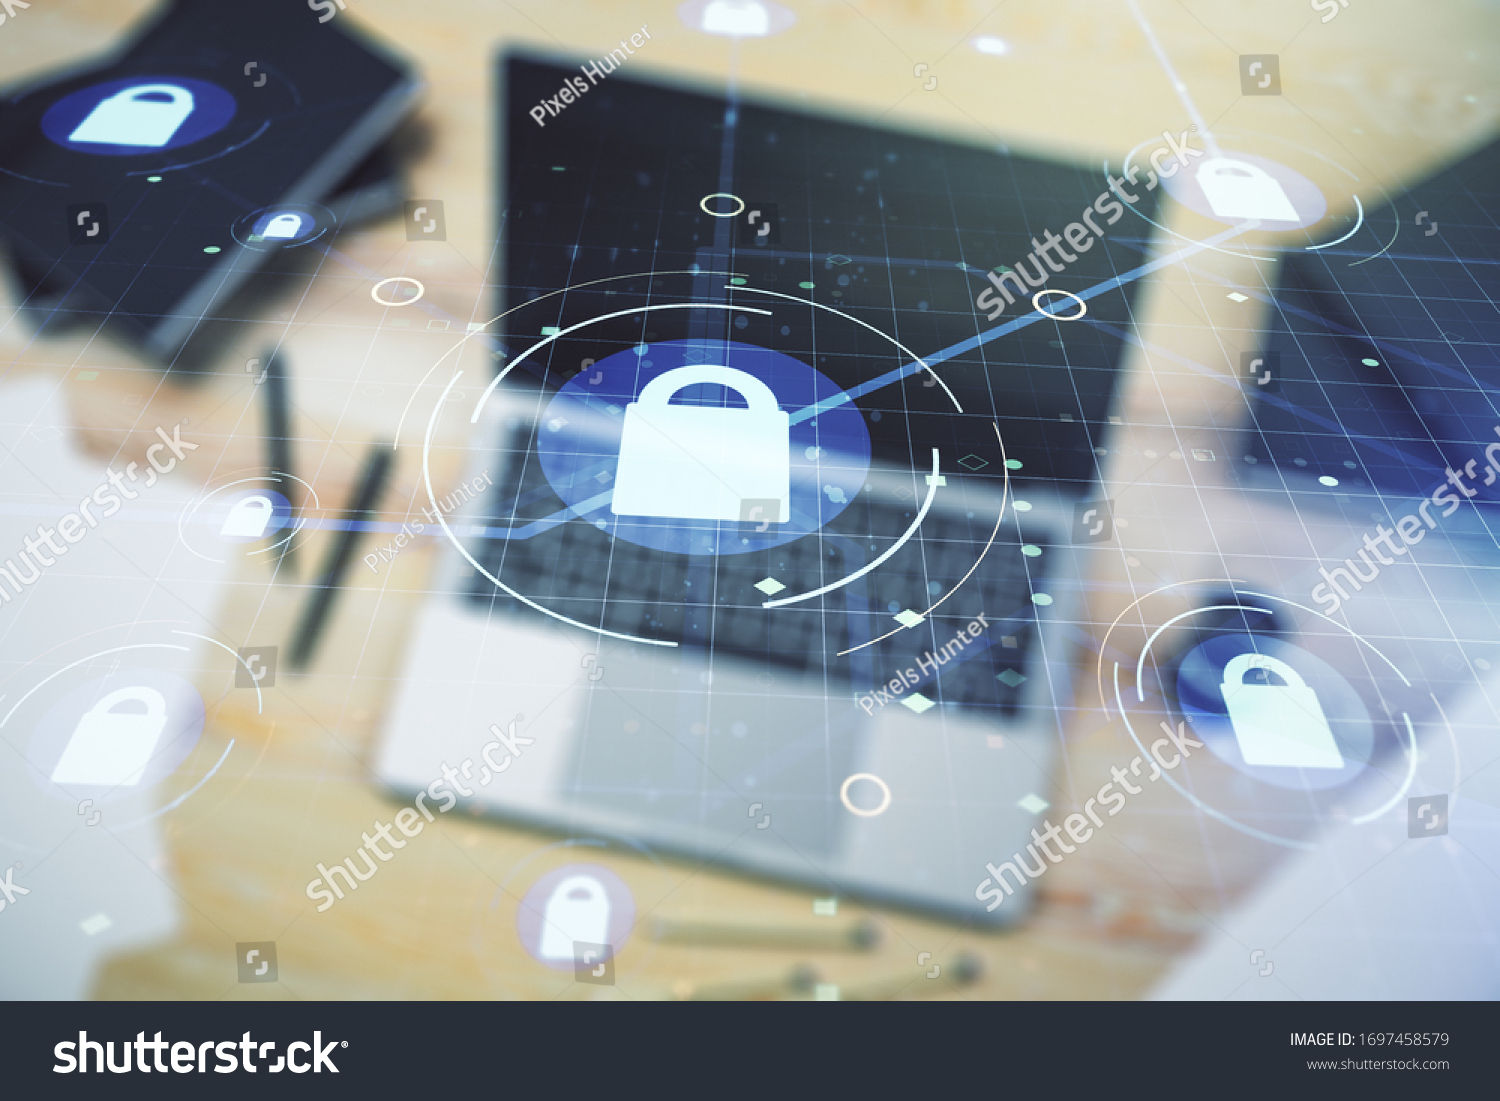 Creative light lock illustration with microcircuit on modern computer background, cyber security concept. Multiexposure #1697458579